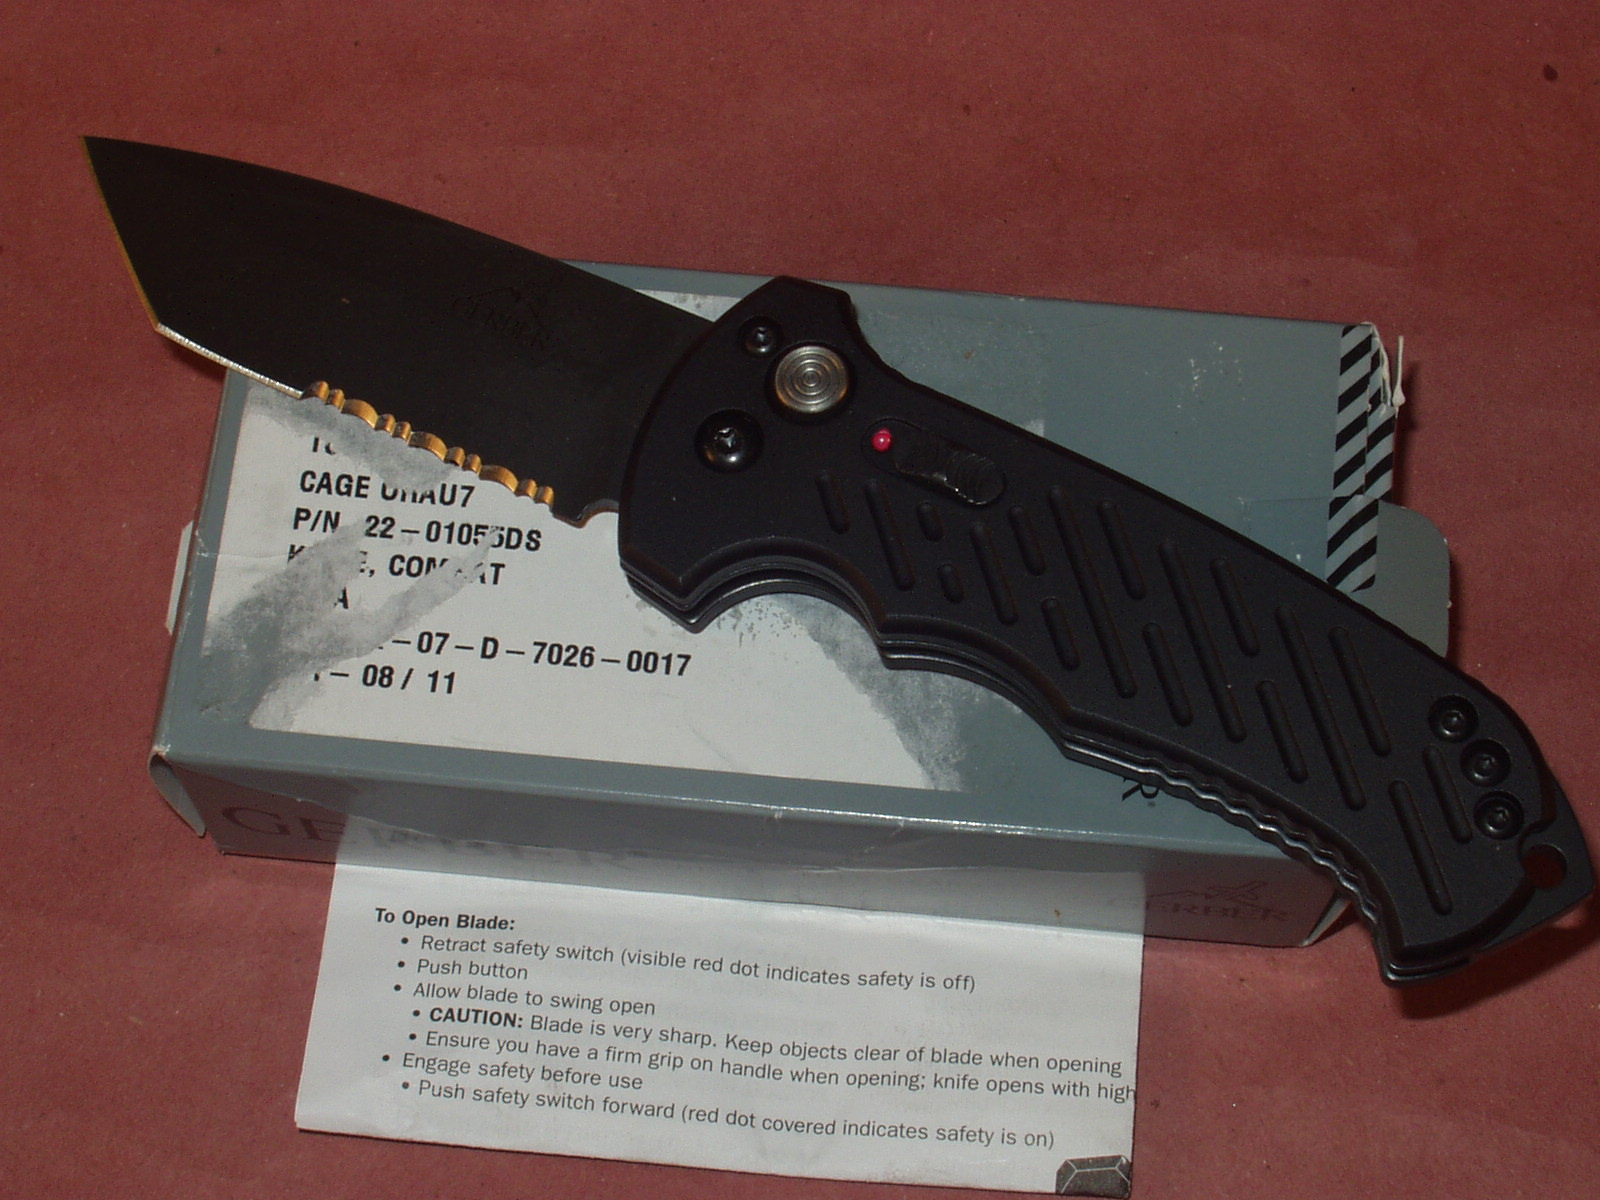 High Adventure Outfitters Gerber 06 Tanto Tip Auto Knife